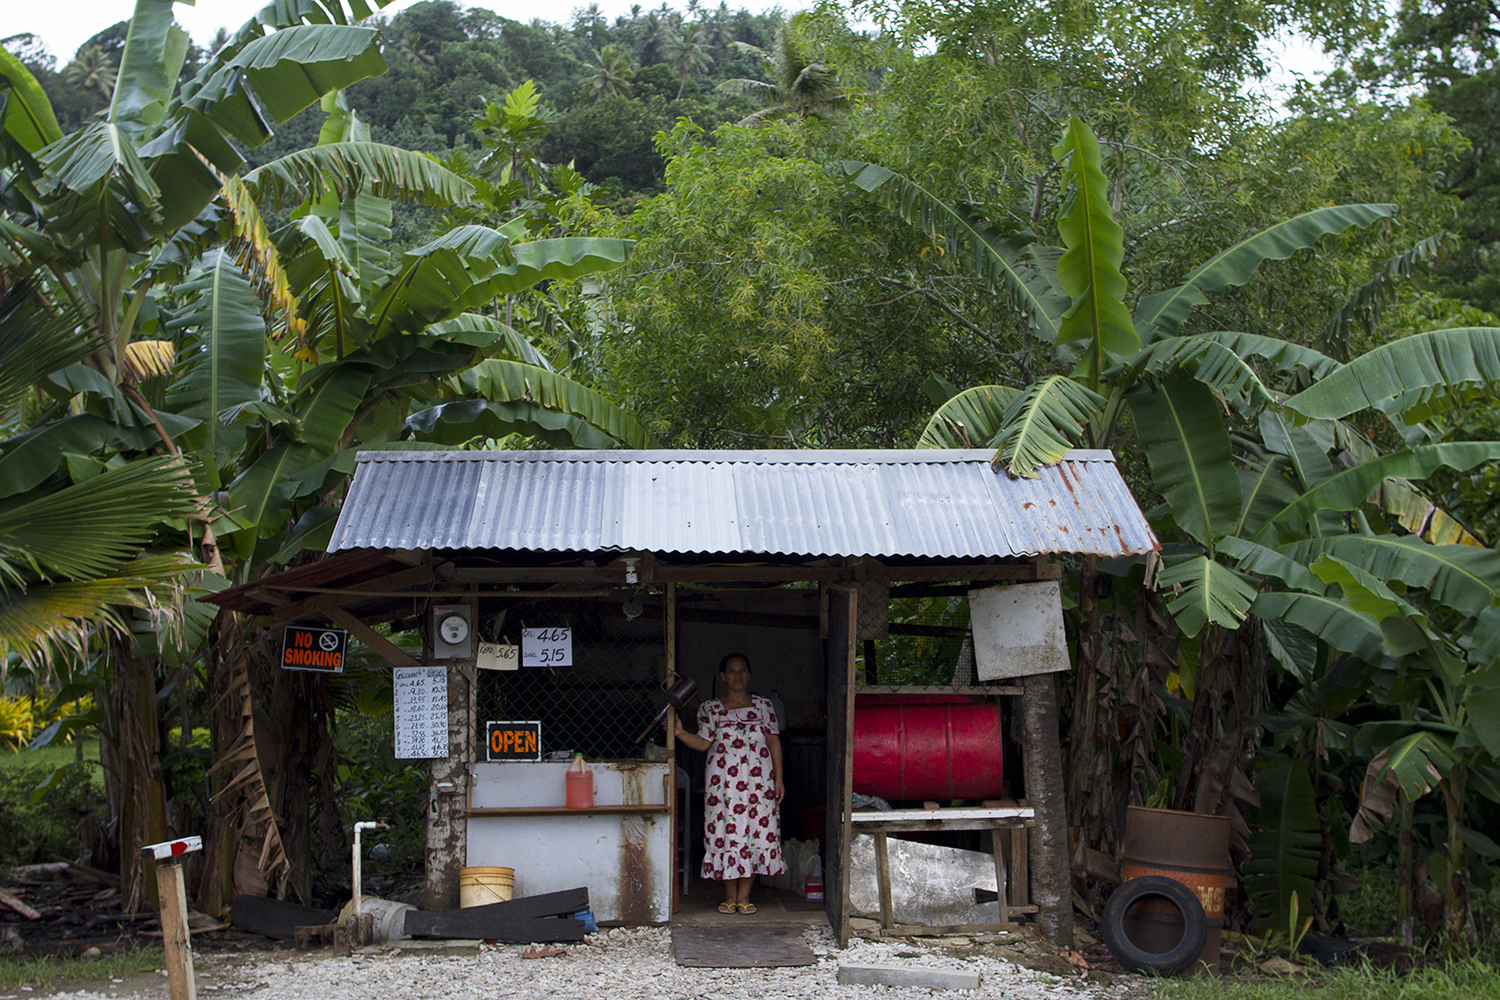 <p>A gas station in Sansrik underscoresthe rural character of the island.</p>